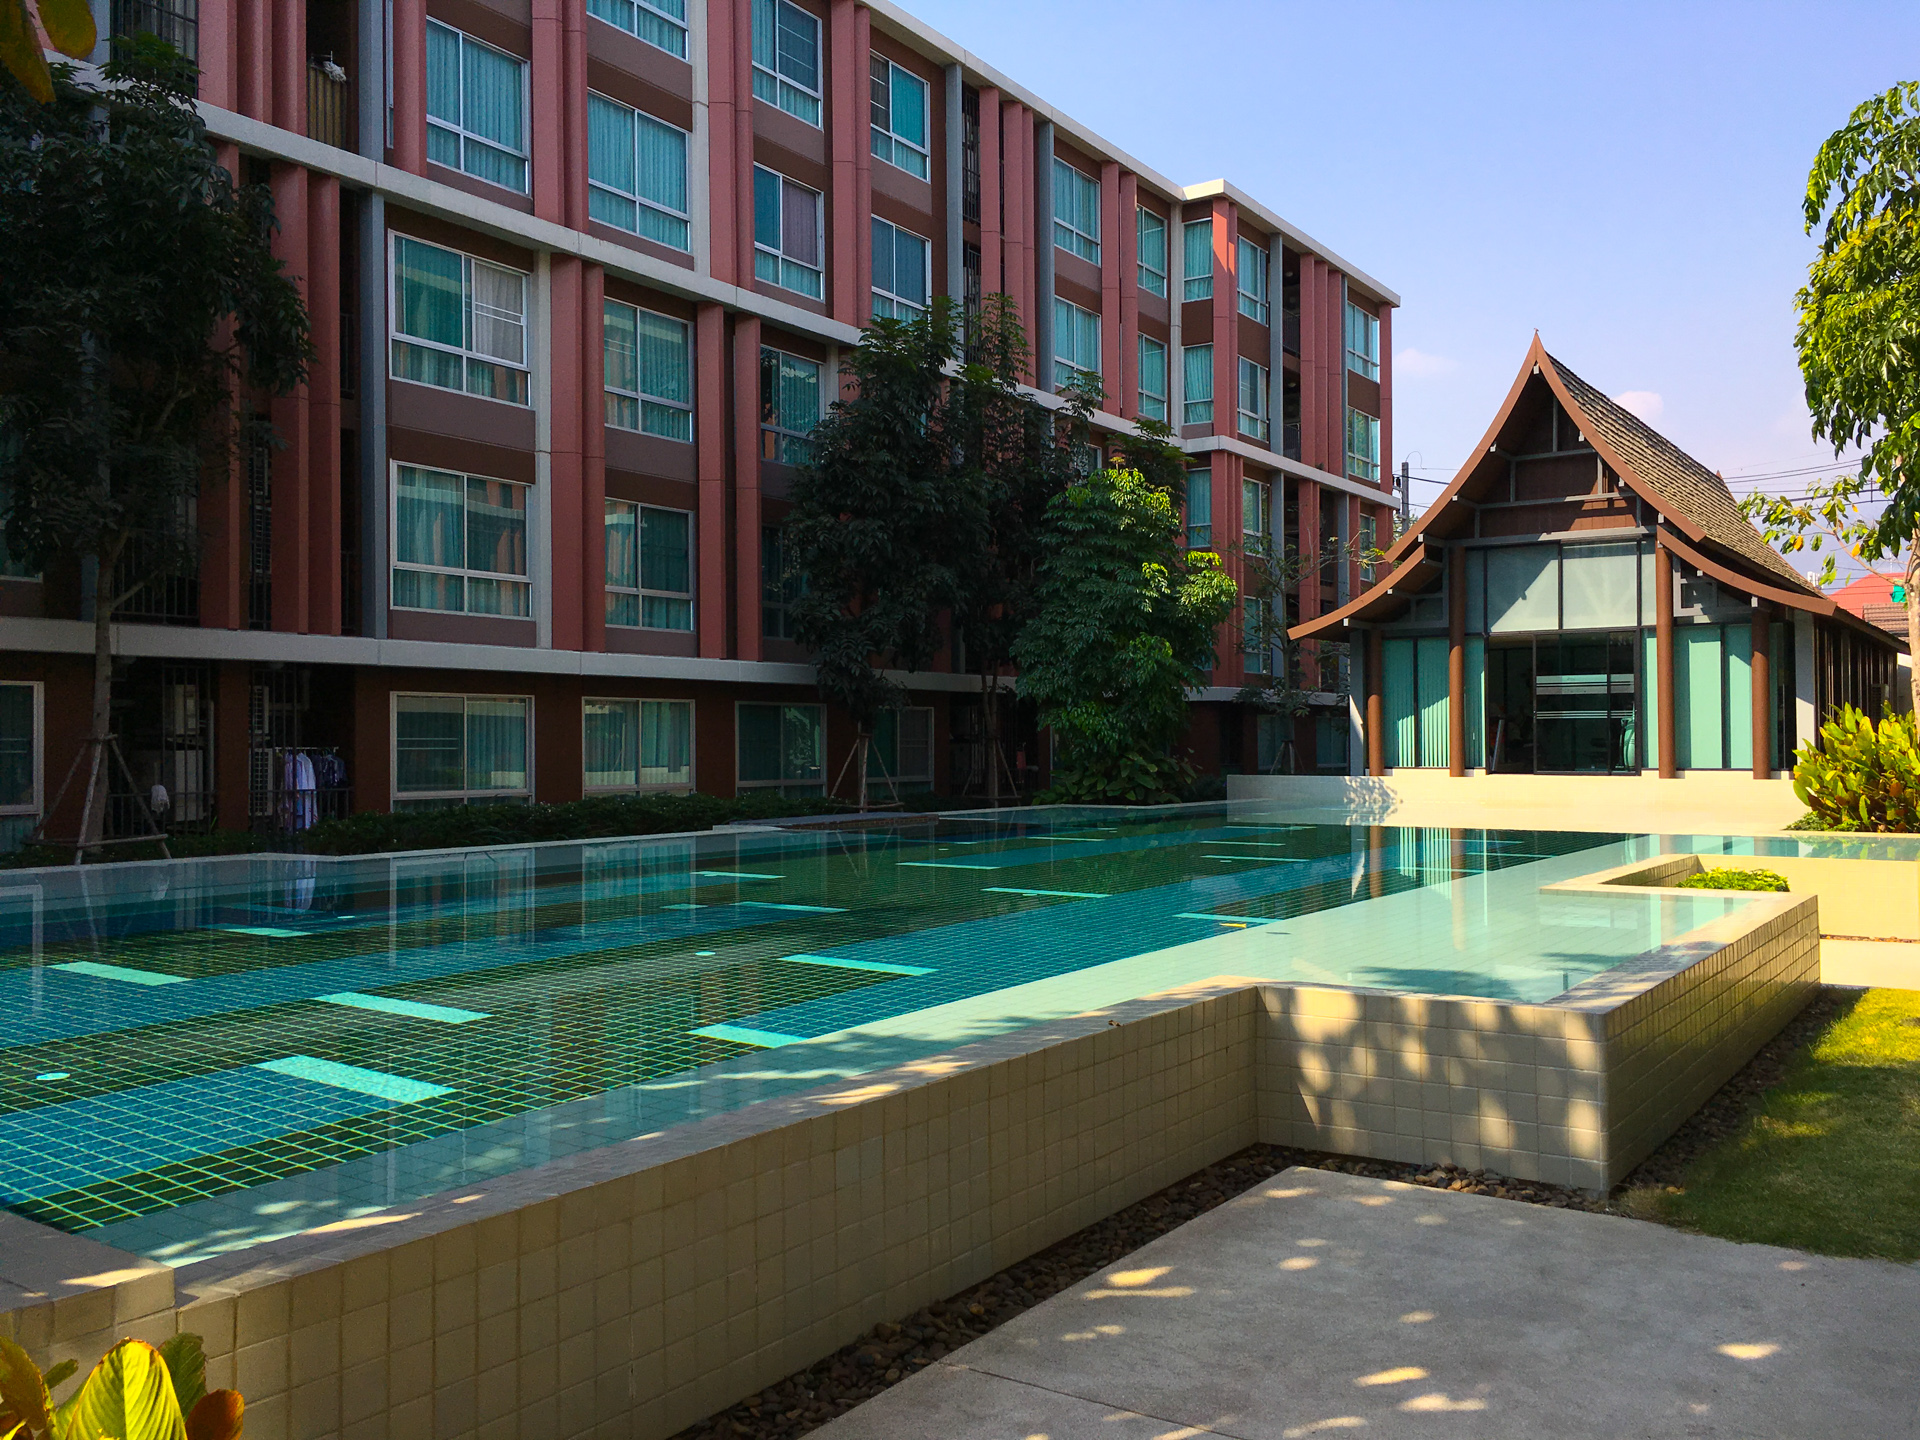 Dvieng Apartment Condo swimming pool and gym